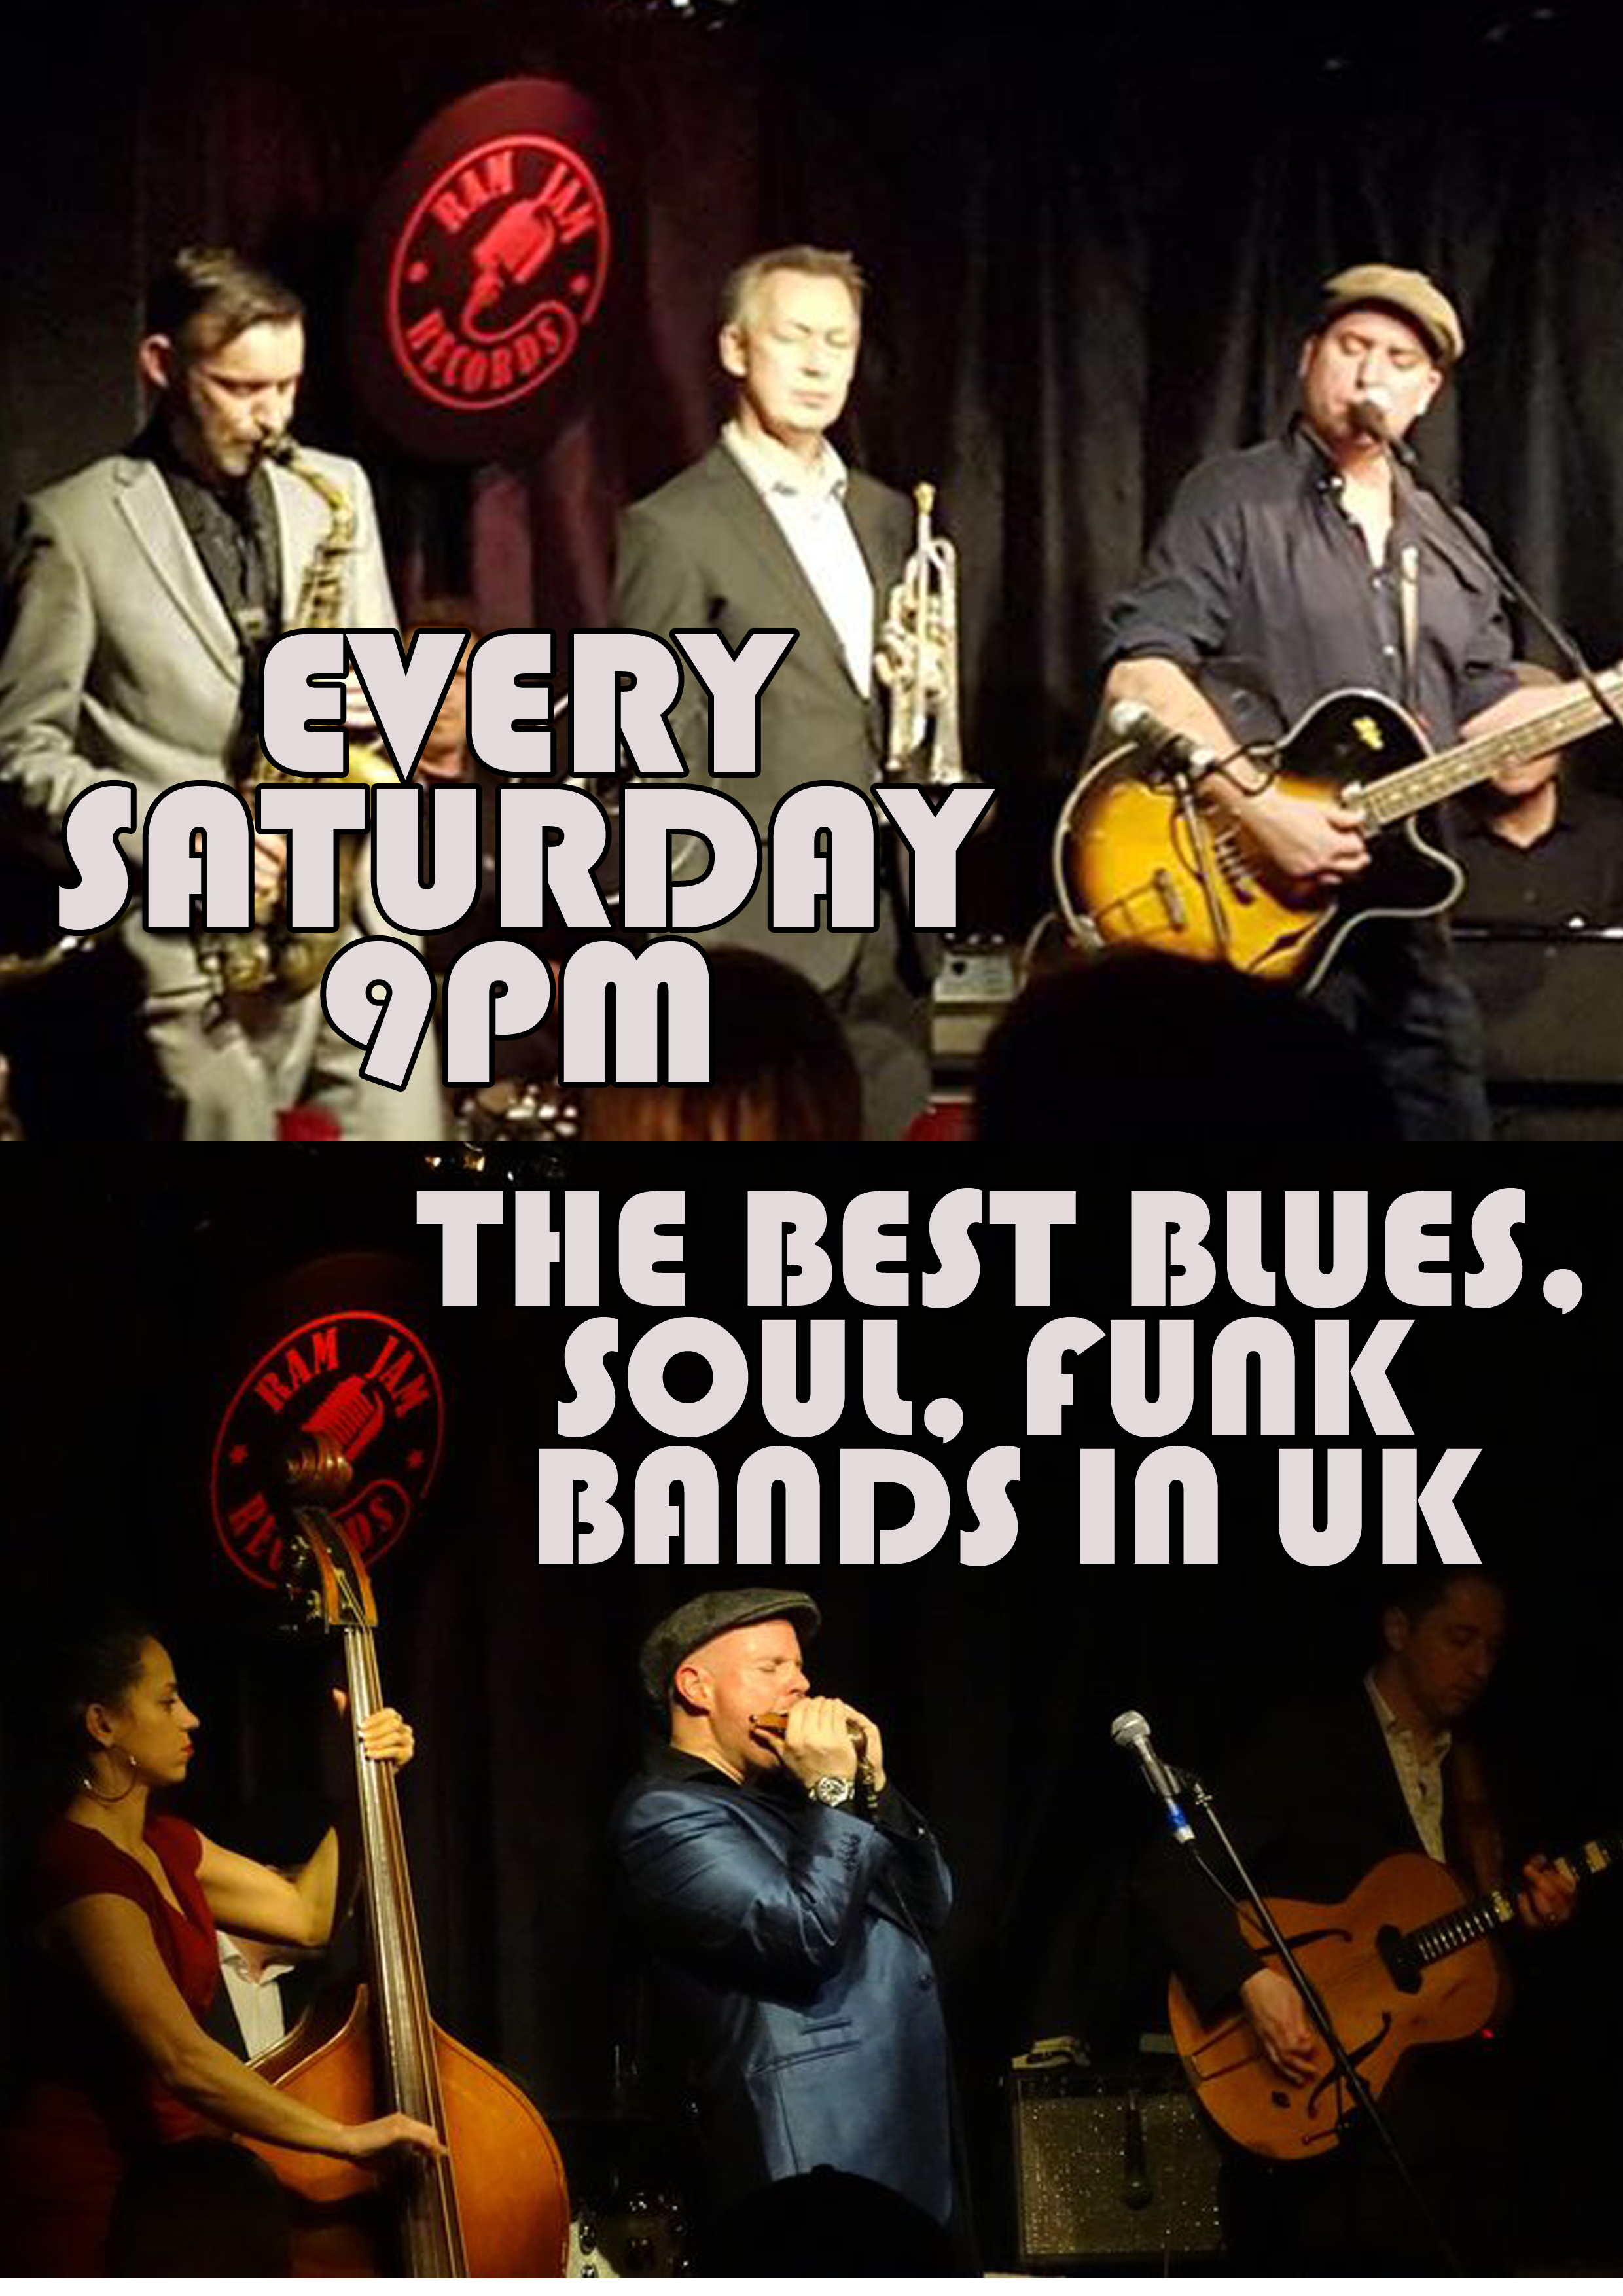 Ram Jam Records hosts live Blues, Soul & Funk 9PM every Saturday